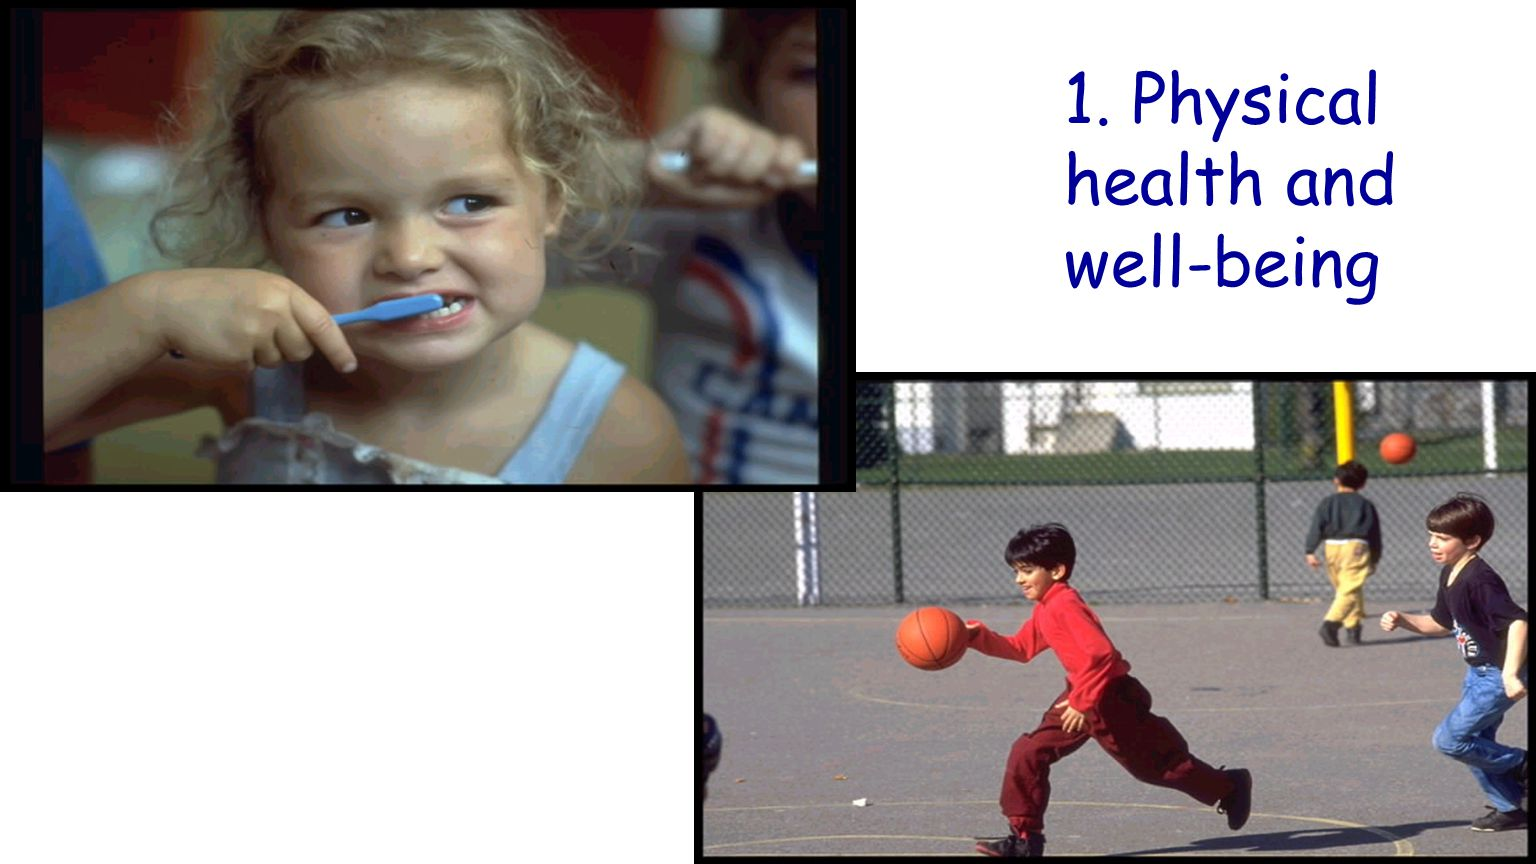 1. Physical health and well-being